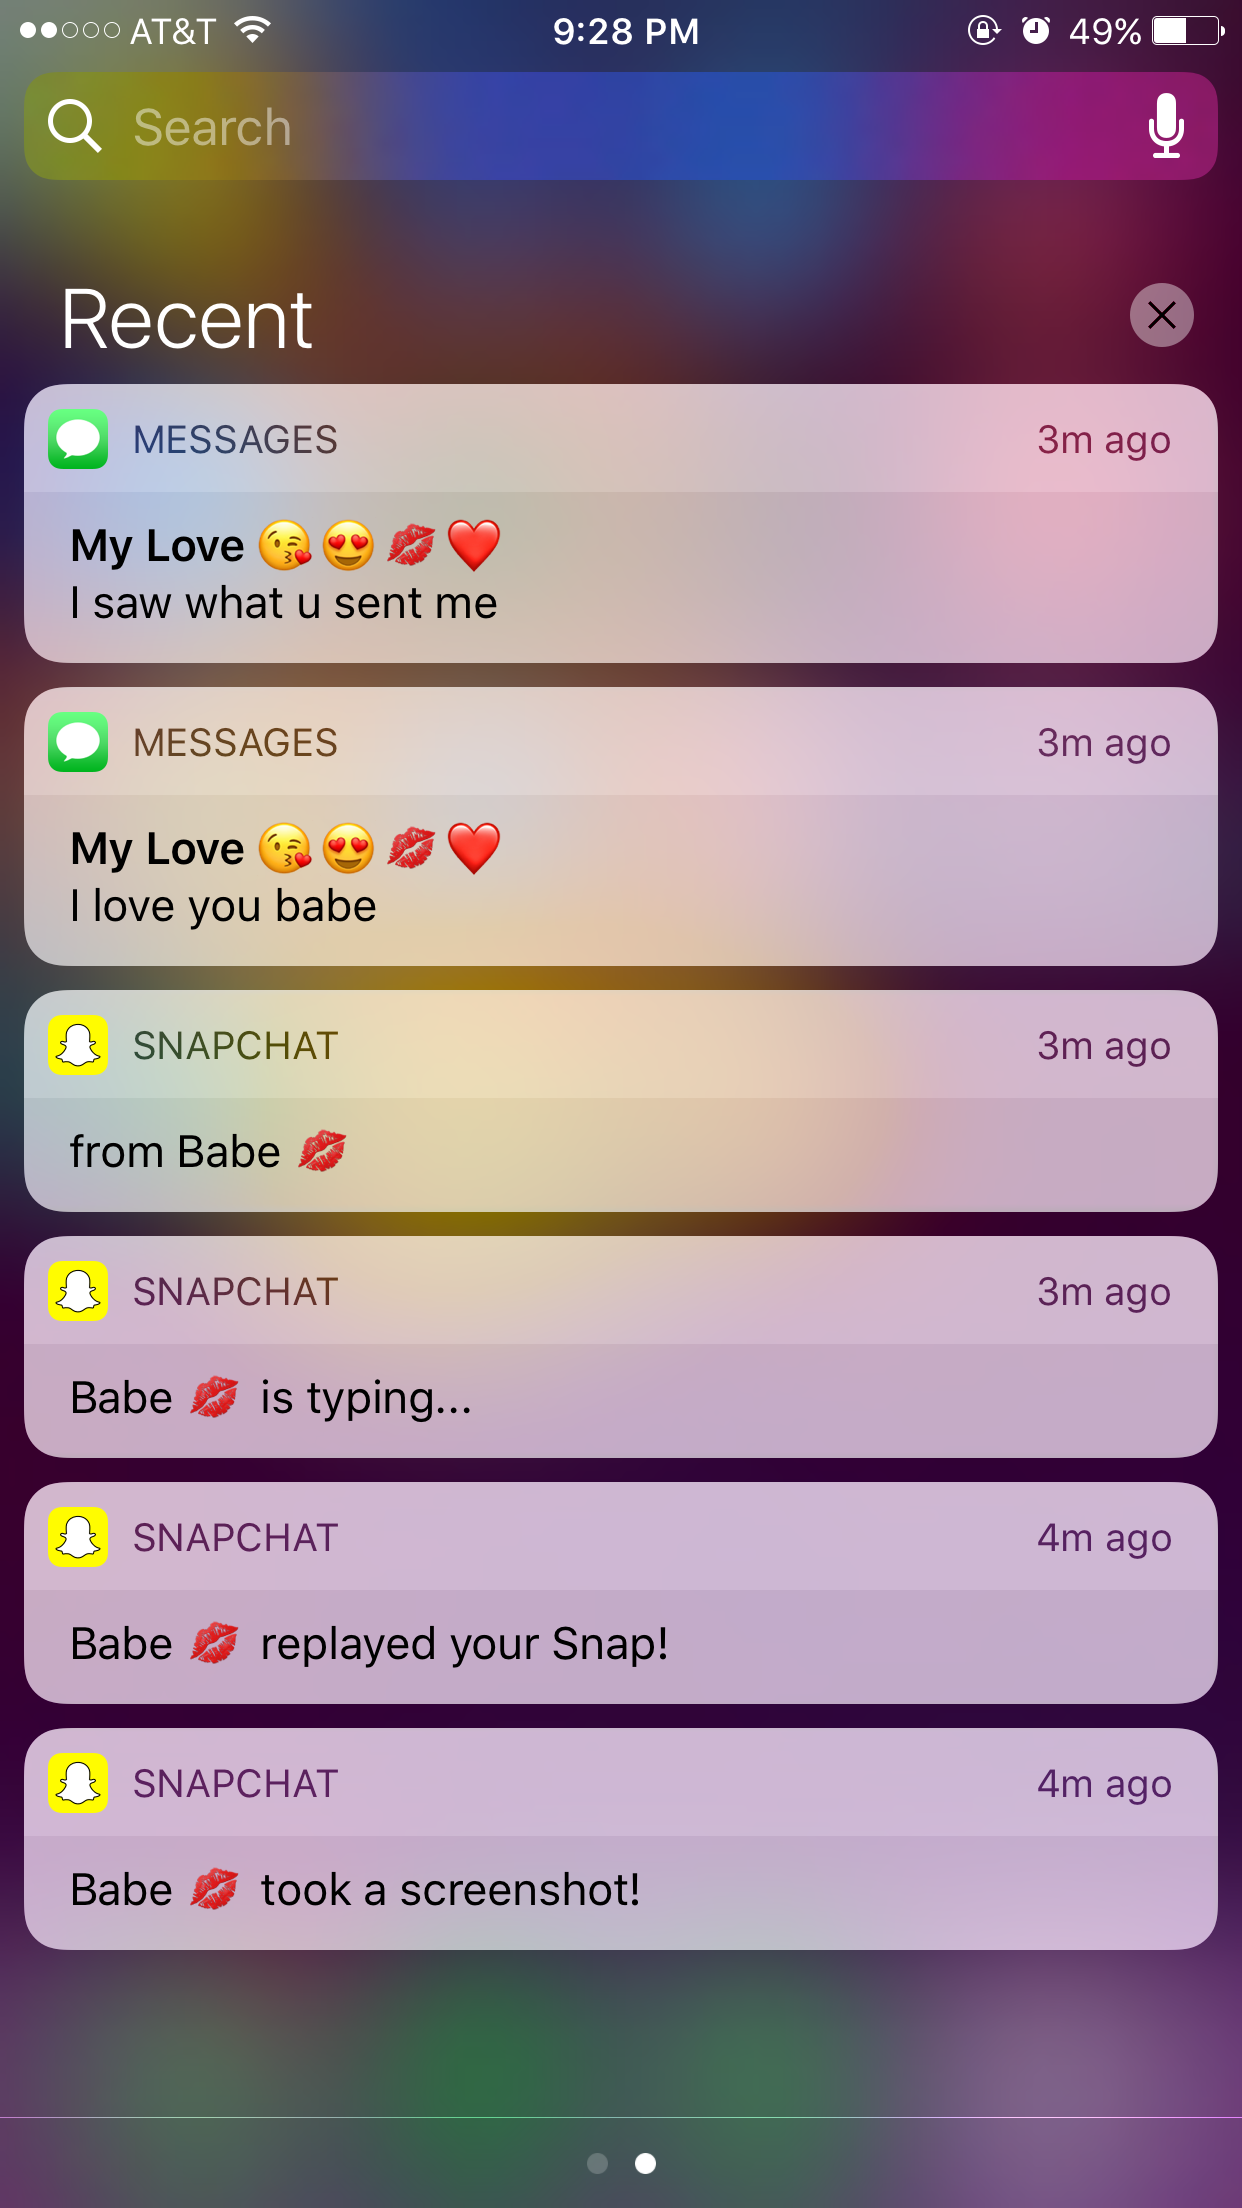 B Used To Screenshot My Snaps Now We Broken Up Forever Because He Don T Know How To Act Cute Relationship Texts Relationship Goals Text Cute Couples Texts